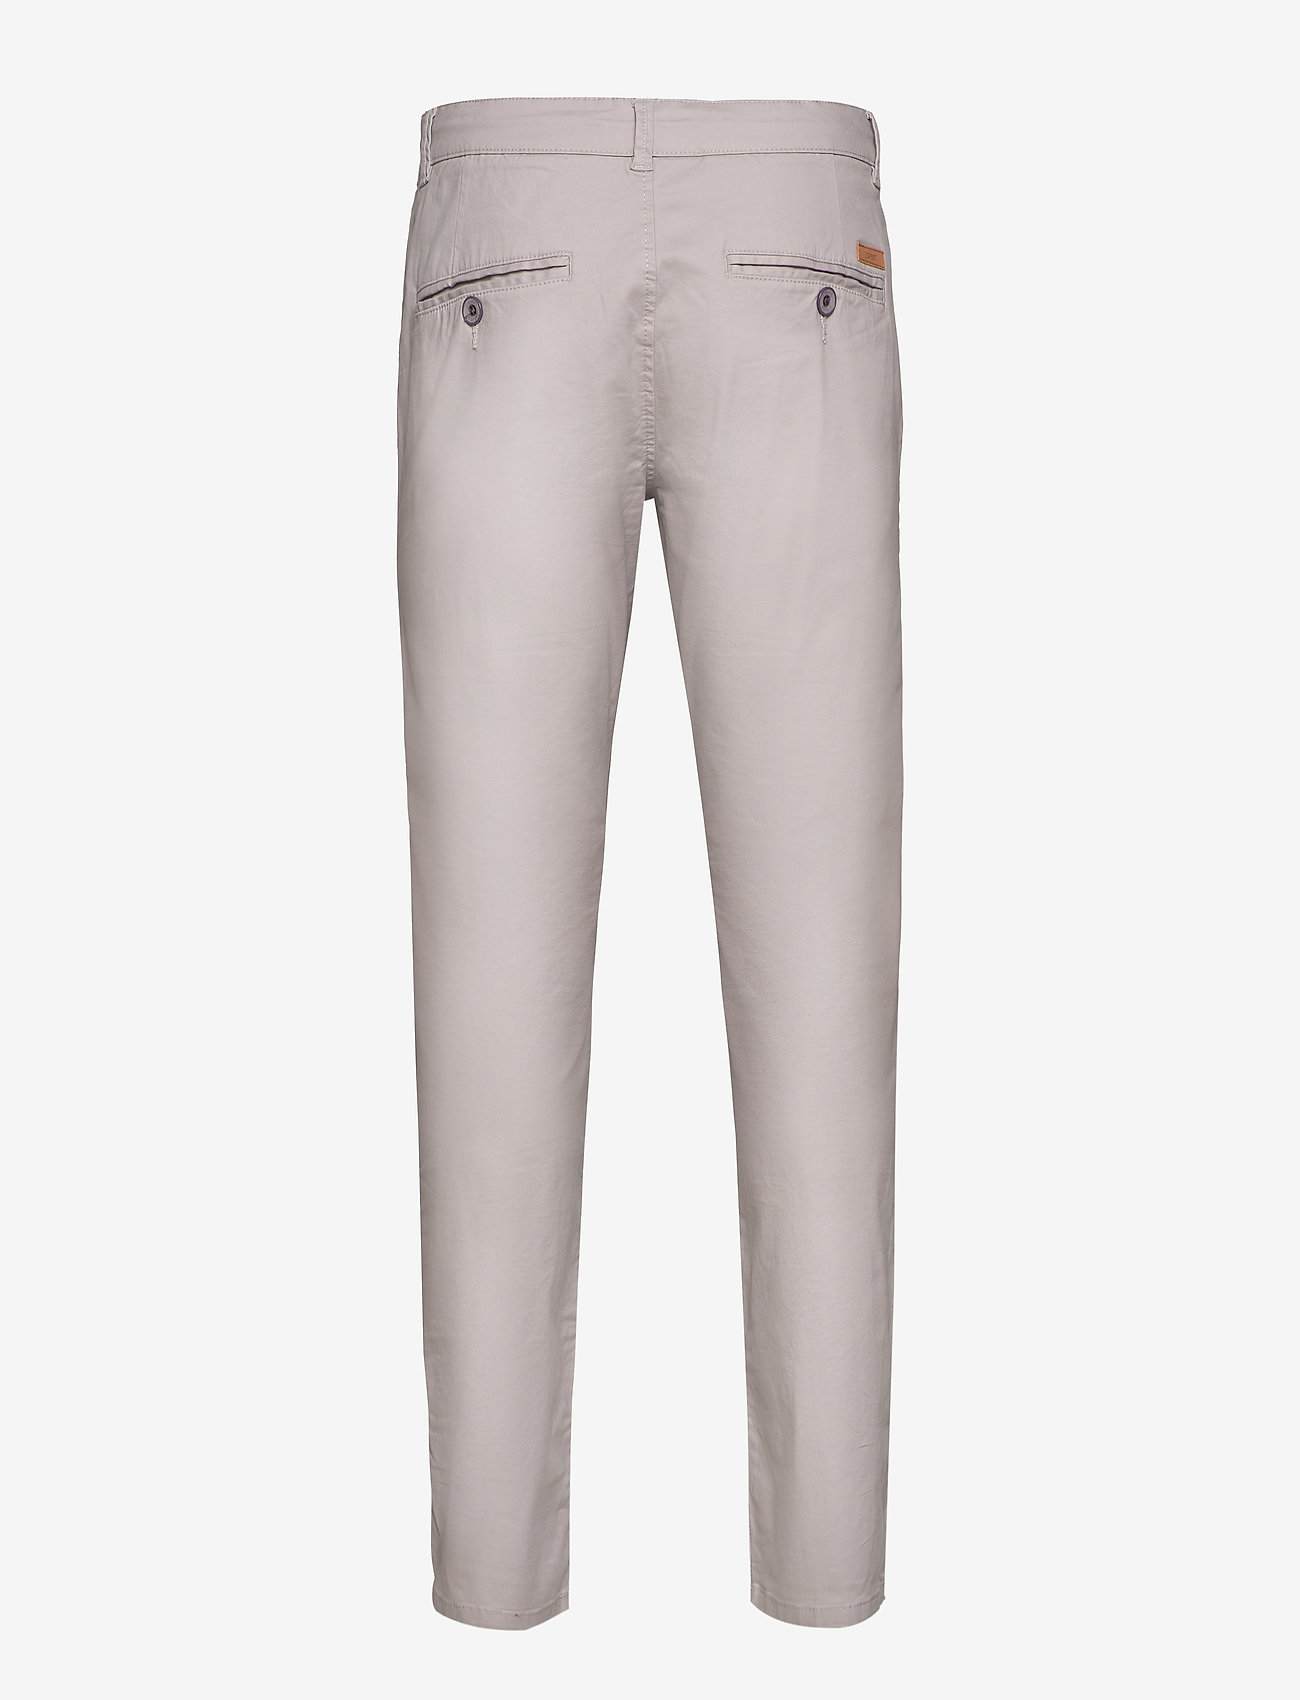 Esprit Casual - Pants woven - chino's - light grey - 1